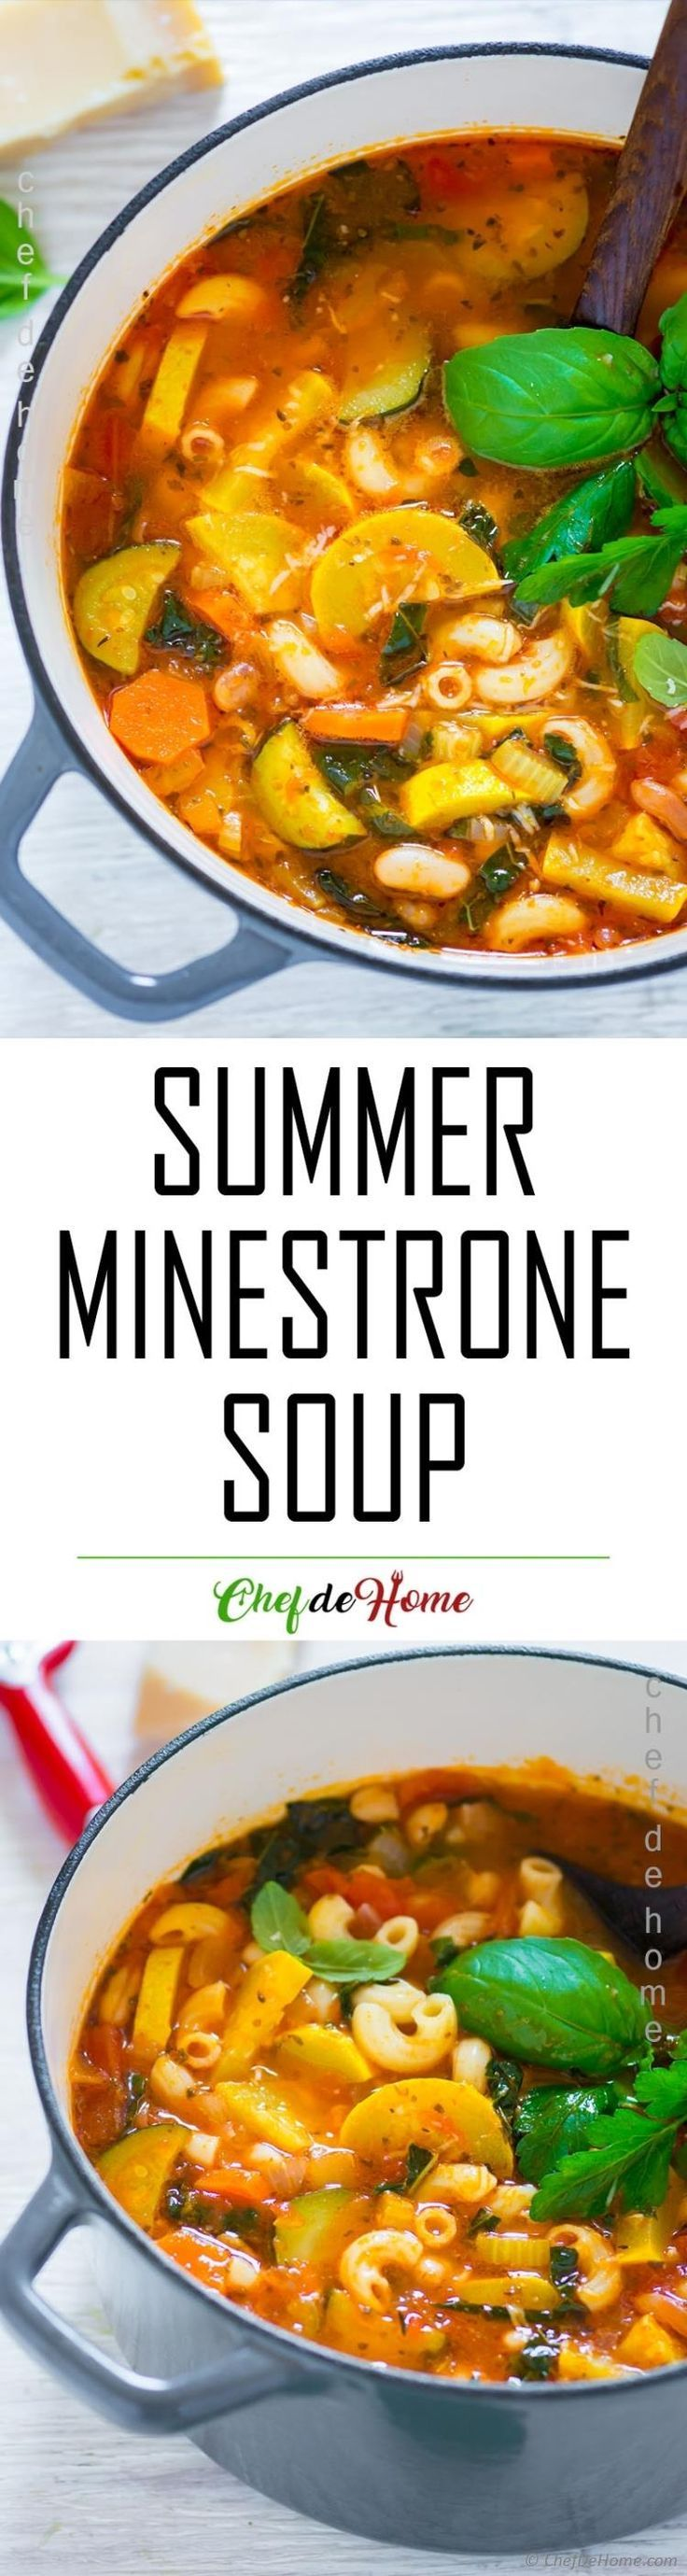 Simple minestrone soup with summer pumpkin noodles and beans